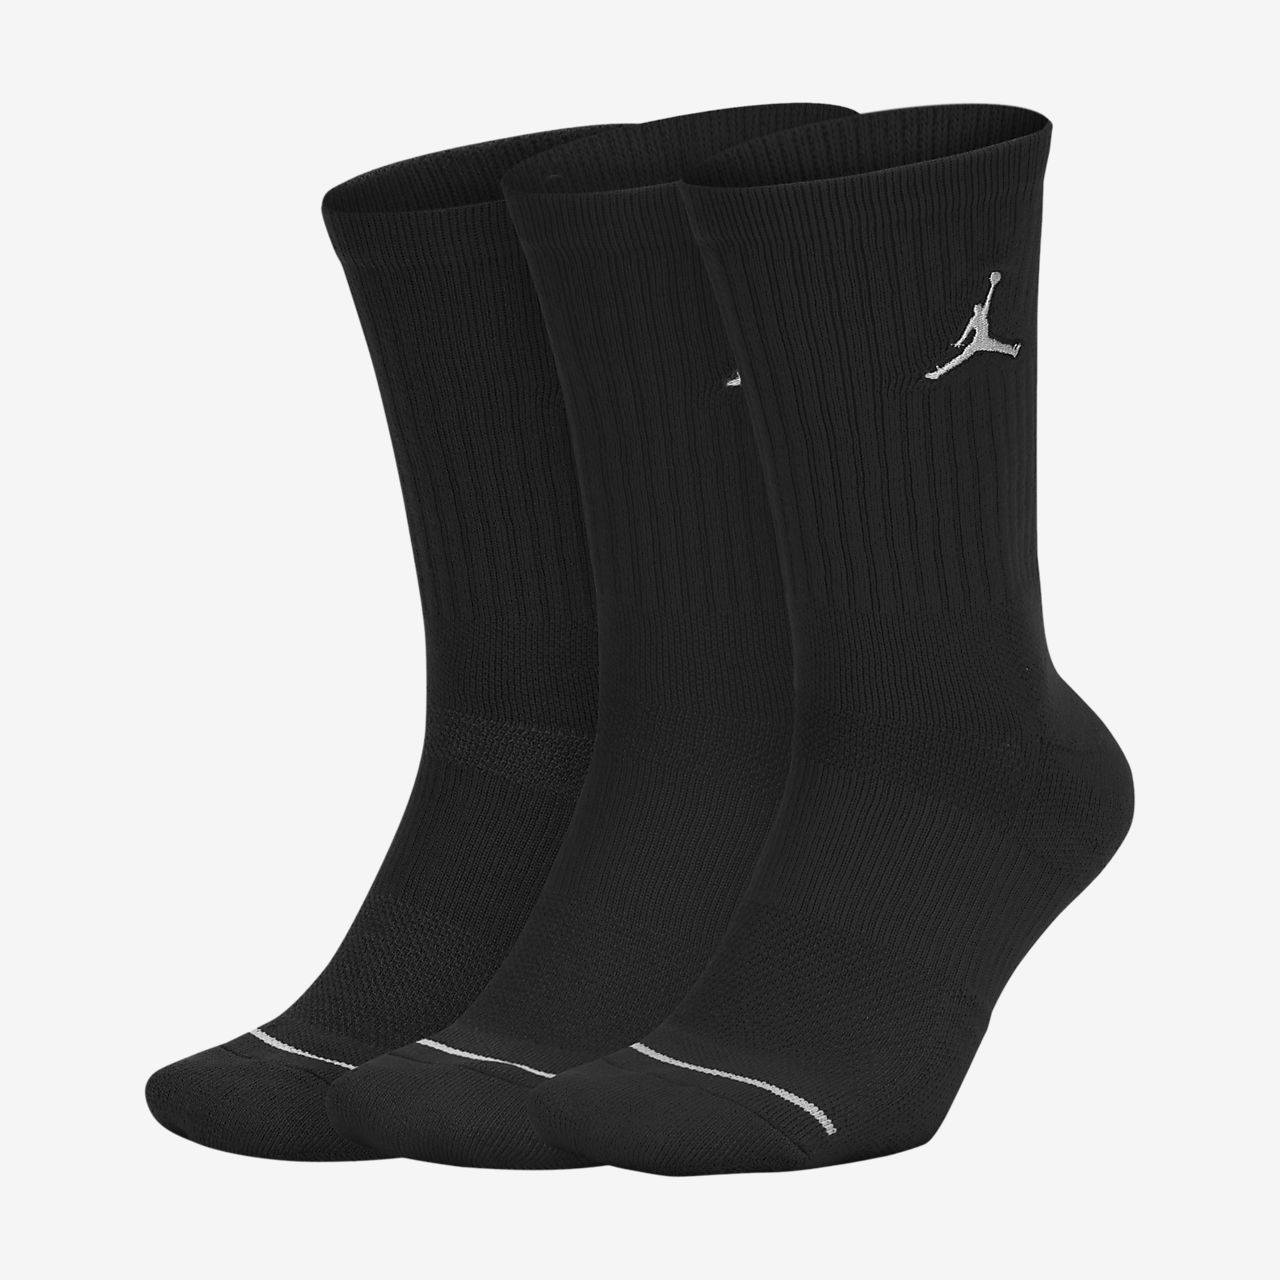 Jordan Jumpman Crew Basketball Socks (3 Pair)